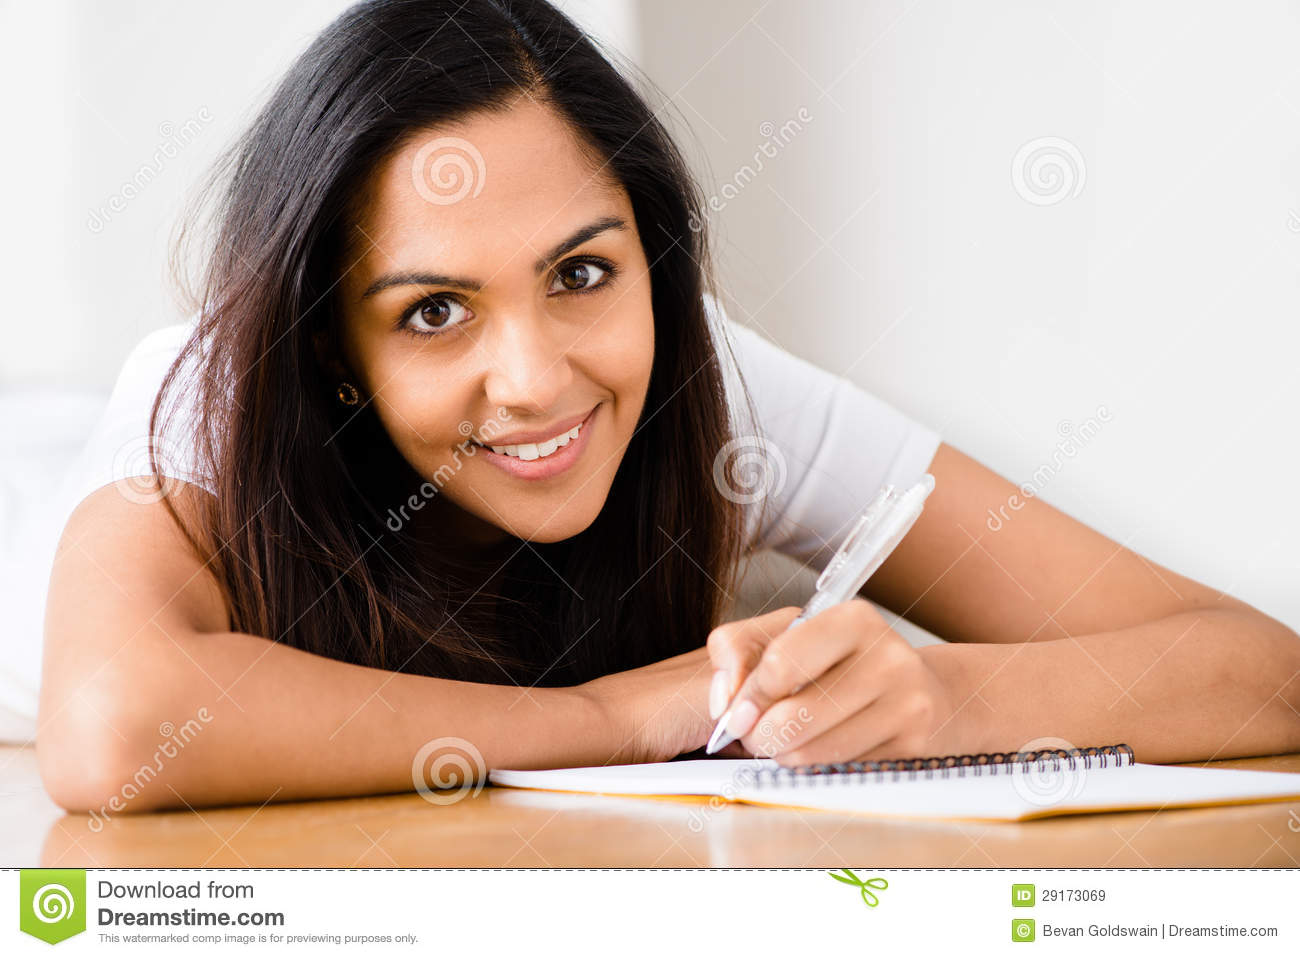 the portrait of ed students pronunciation education essay Students can refer to it as they  french immersion, french education  in private conversation by another administrator common application essay.